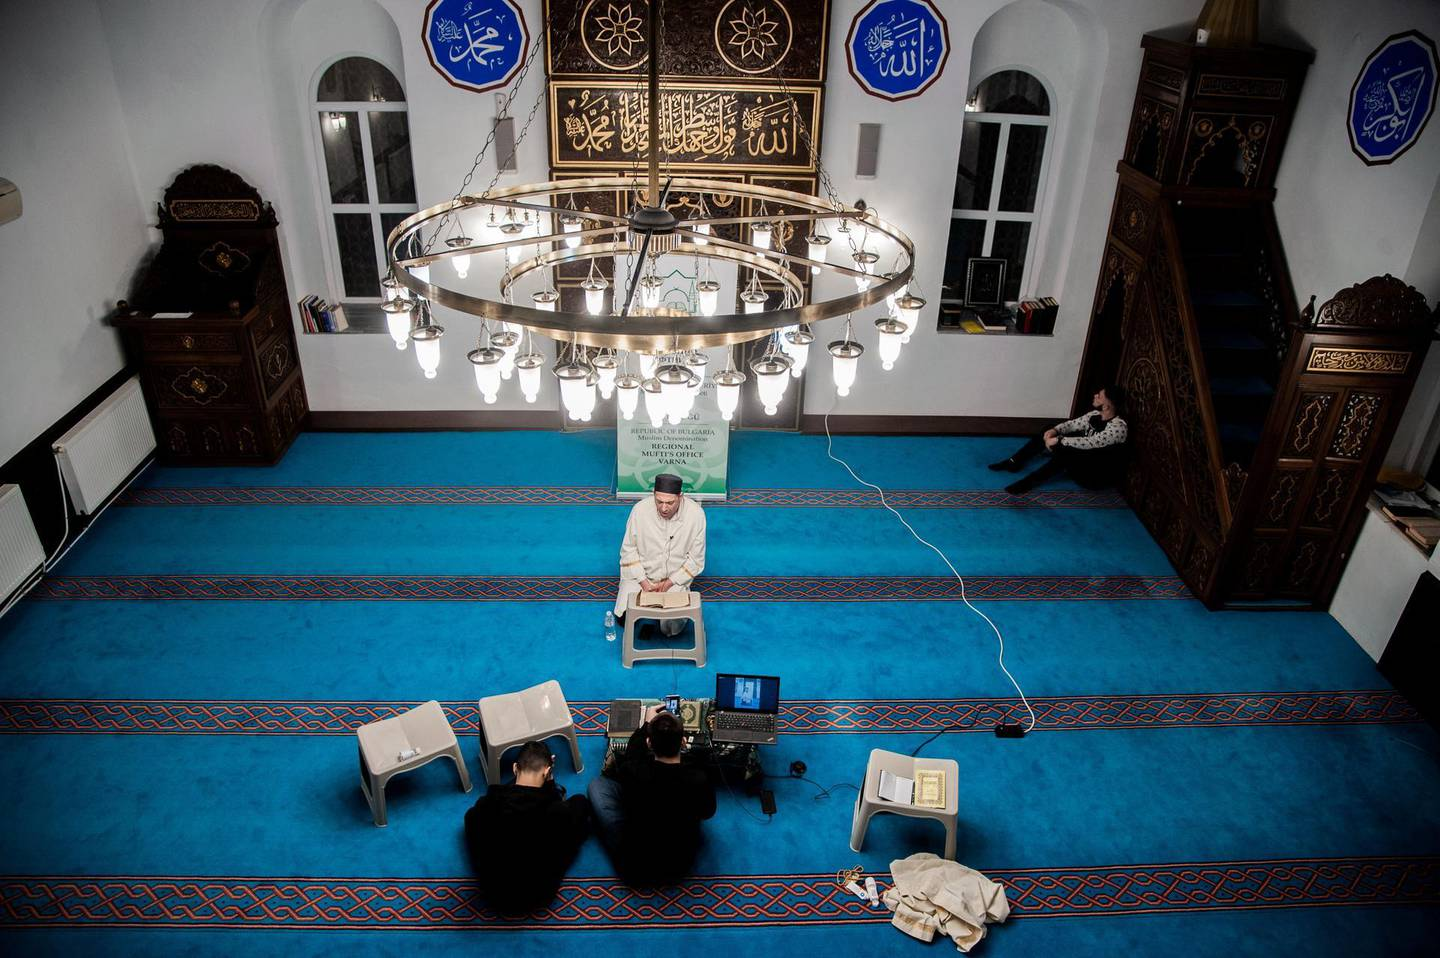 The Azazie Mosque livestream in facebook for Muslim community to pray from home, Varna, Bulgaria on April 07, 2020. Muslism meet the Night of Baraat  the 15th night of the month of Shaban. On this night Muslims do their rehearsal for the Month of Ramadan and everything they can in order to be closer to Allah (S.T.). They perform acts of worship in order to be better prepared for the meeting with the month of Ramadan, which is the worthiest among all months of the year. The Night of Baraat is the night in which Allah (S.T.) responds with forgiveness to anyone who turns to Him. This is the night in which everyone who ask for prosperity, will receive it from the Almighty! That is why Muslims do not miss to make sense of the hours of this night by performing acts of worship. The Azazie Mosque livestream in facebook for Muslim community to pray from home, Varna, Bulgaria on April 07, 2020 (Photo by Hristo Rusev/NurPhoto via Getty Images)